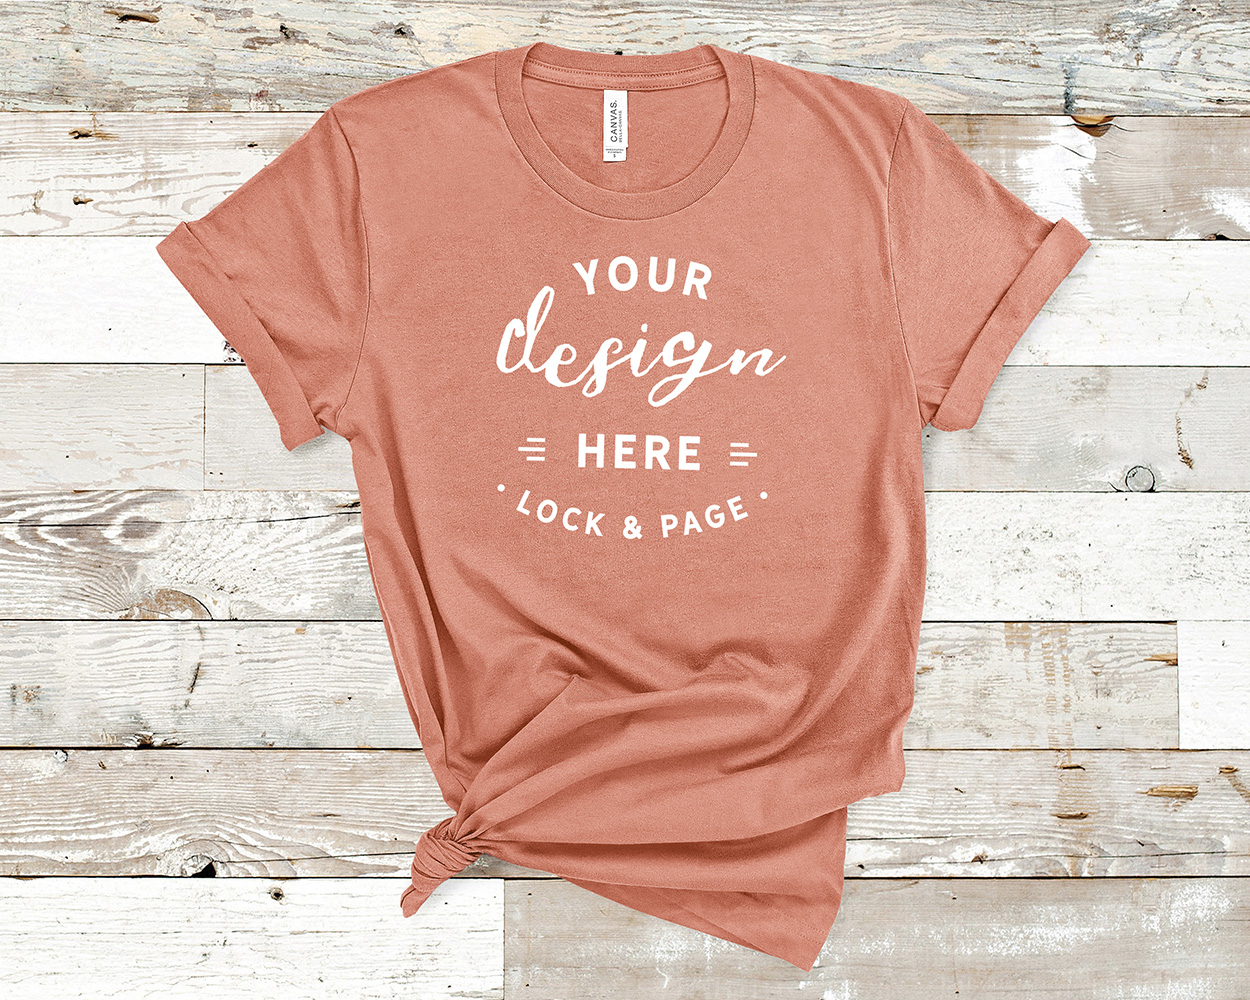 Bella Canvas 3001 Mockup T-Shirt Bundle All Colors On Wood example image 20